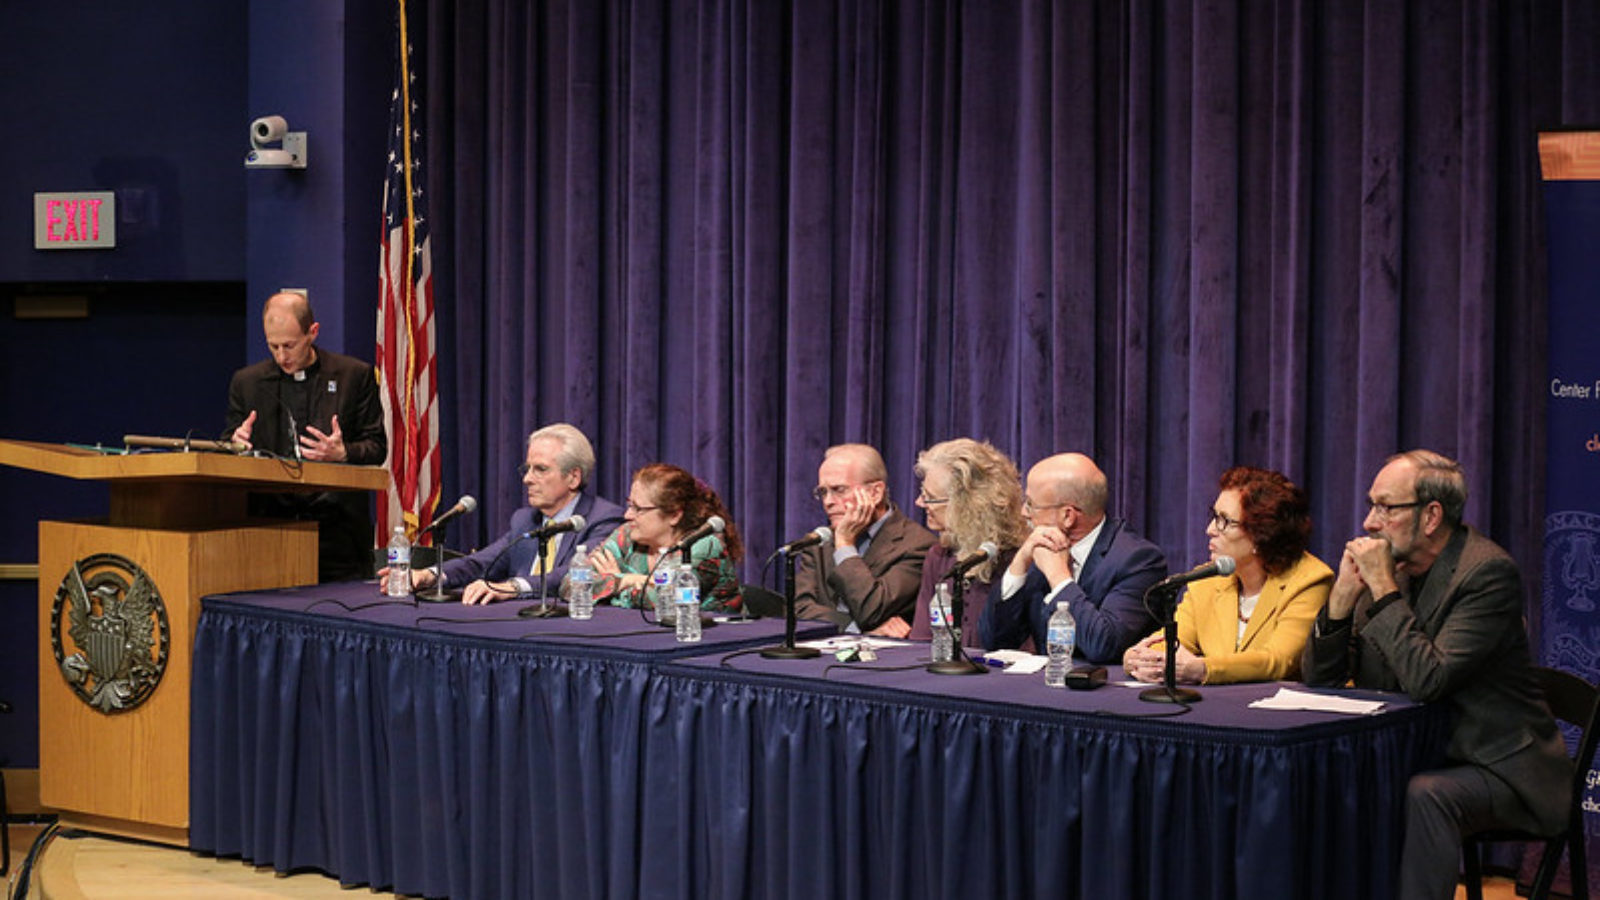 CLAS 60th Anniversary Panel